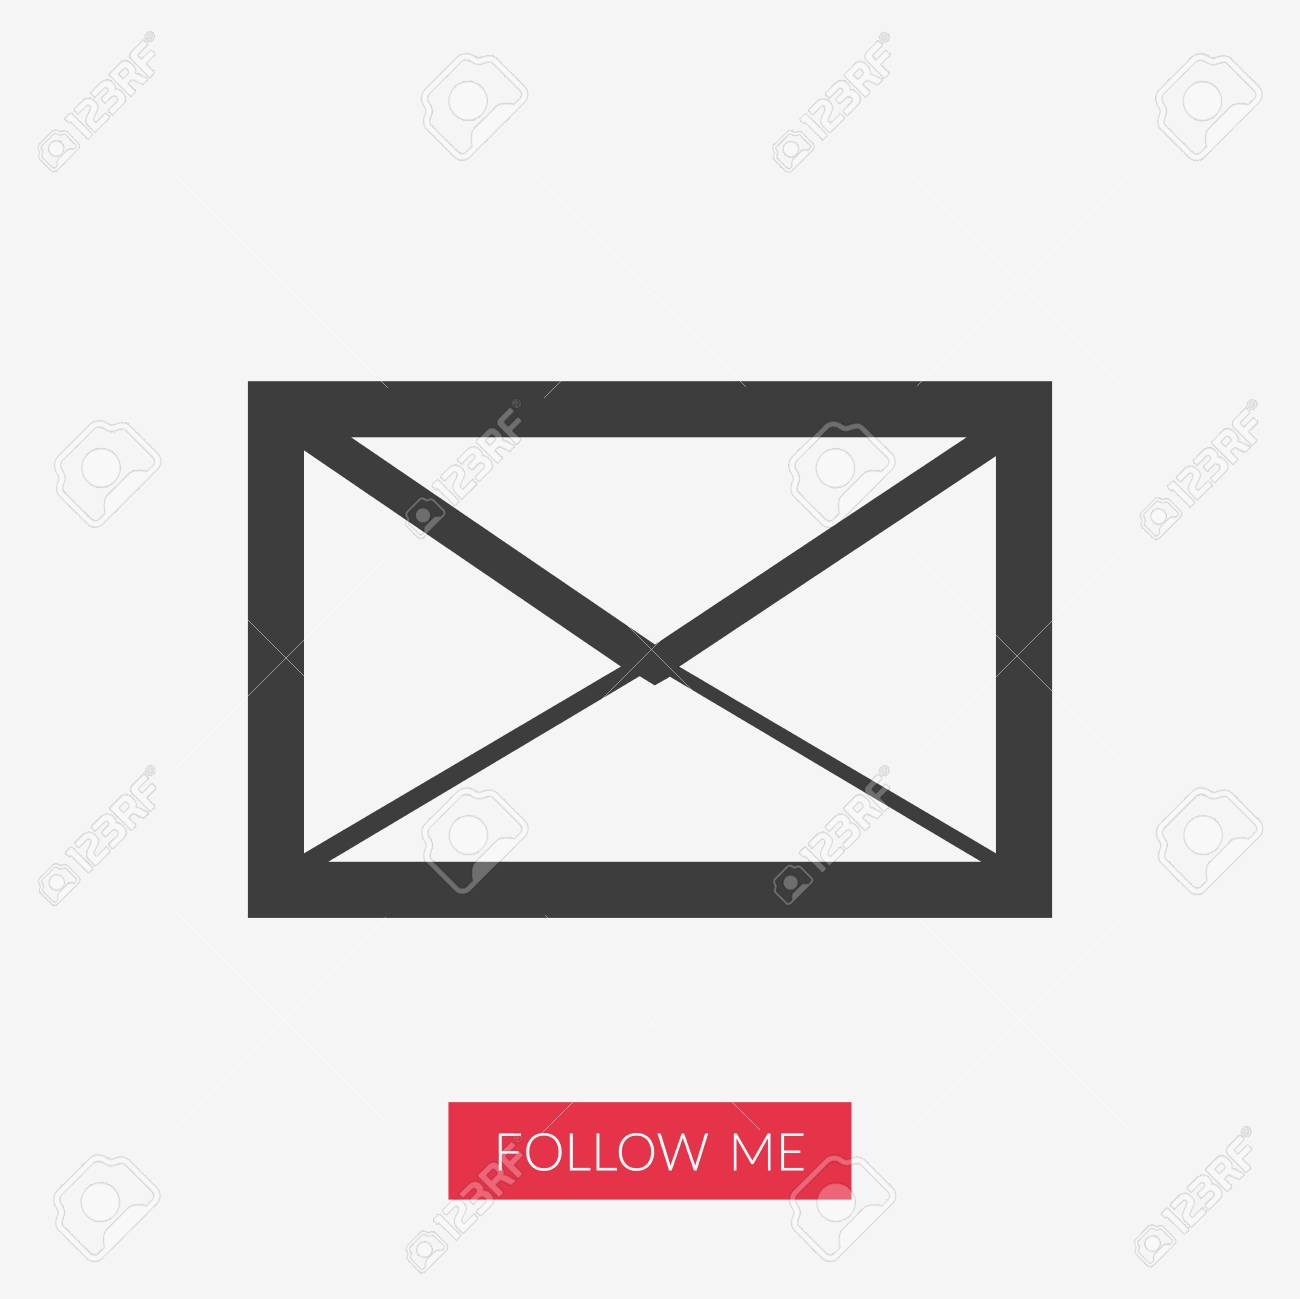 envelope vector email icon illustration with follow me text rh 123rf com vector icono mail Address Icon Vector